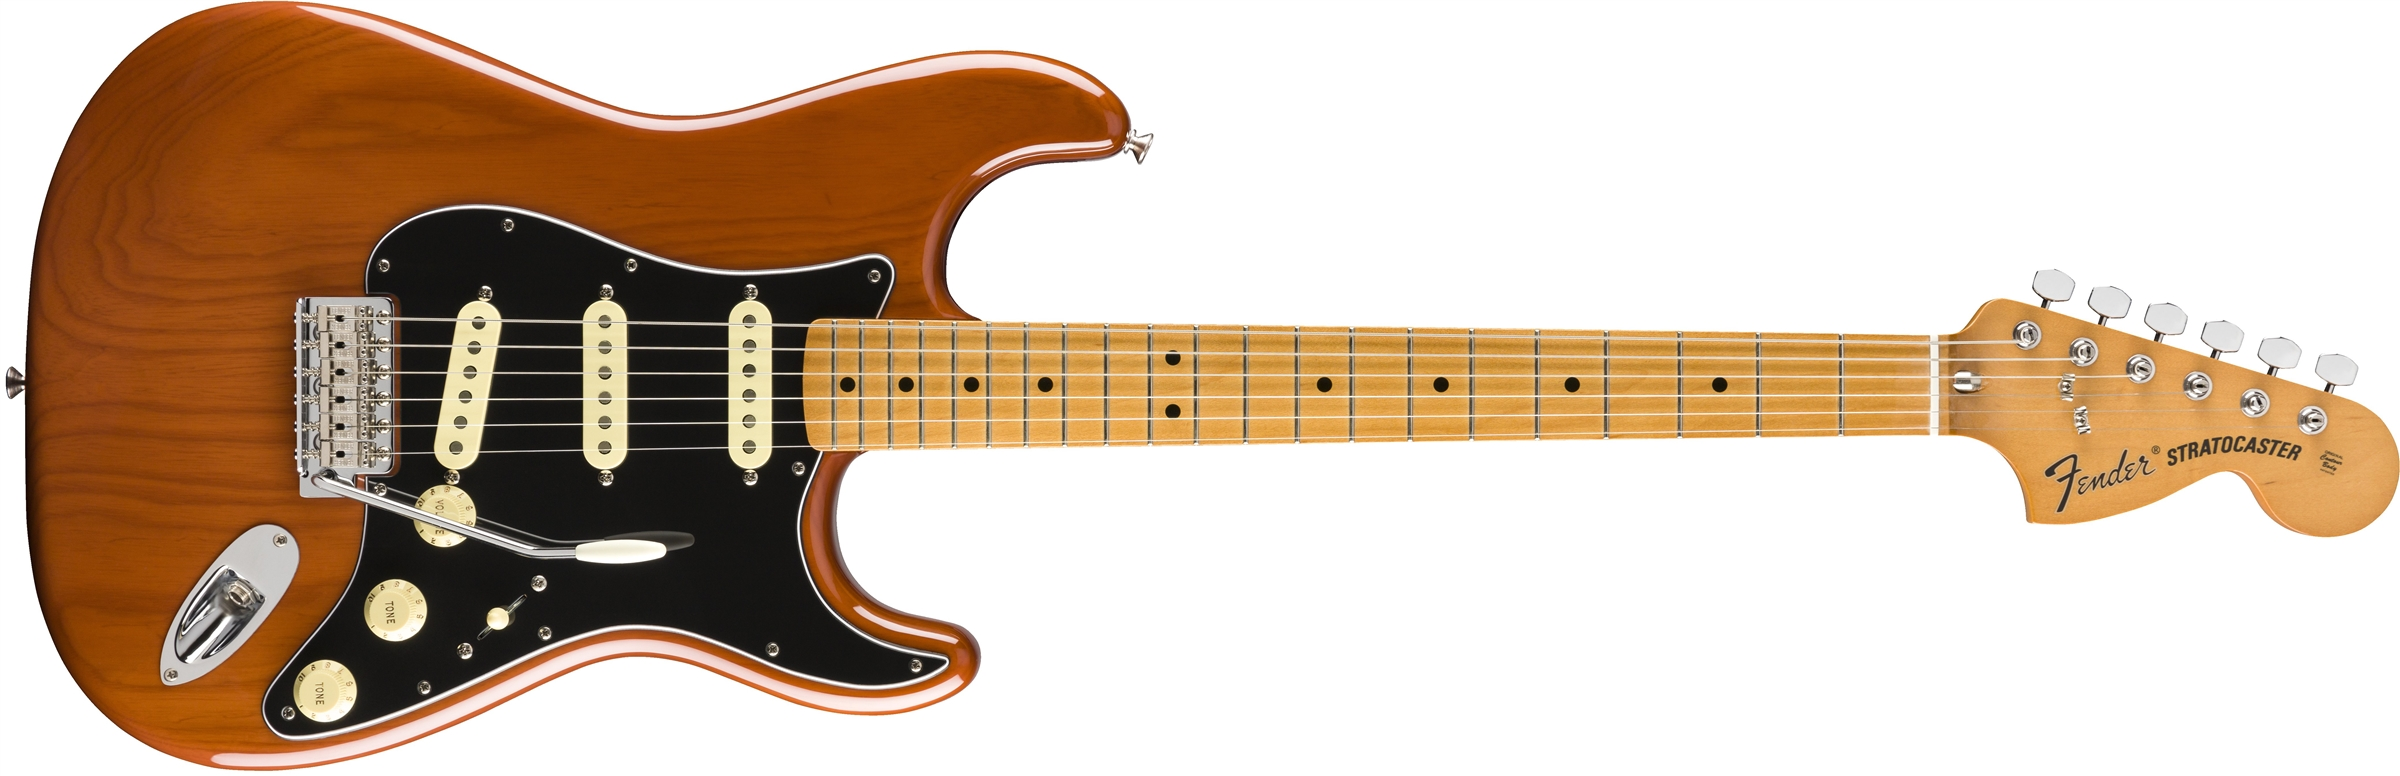 Classic Series 70s Stratocaster Electric Guitars Guitar Tap To Expand